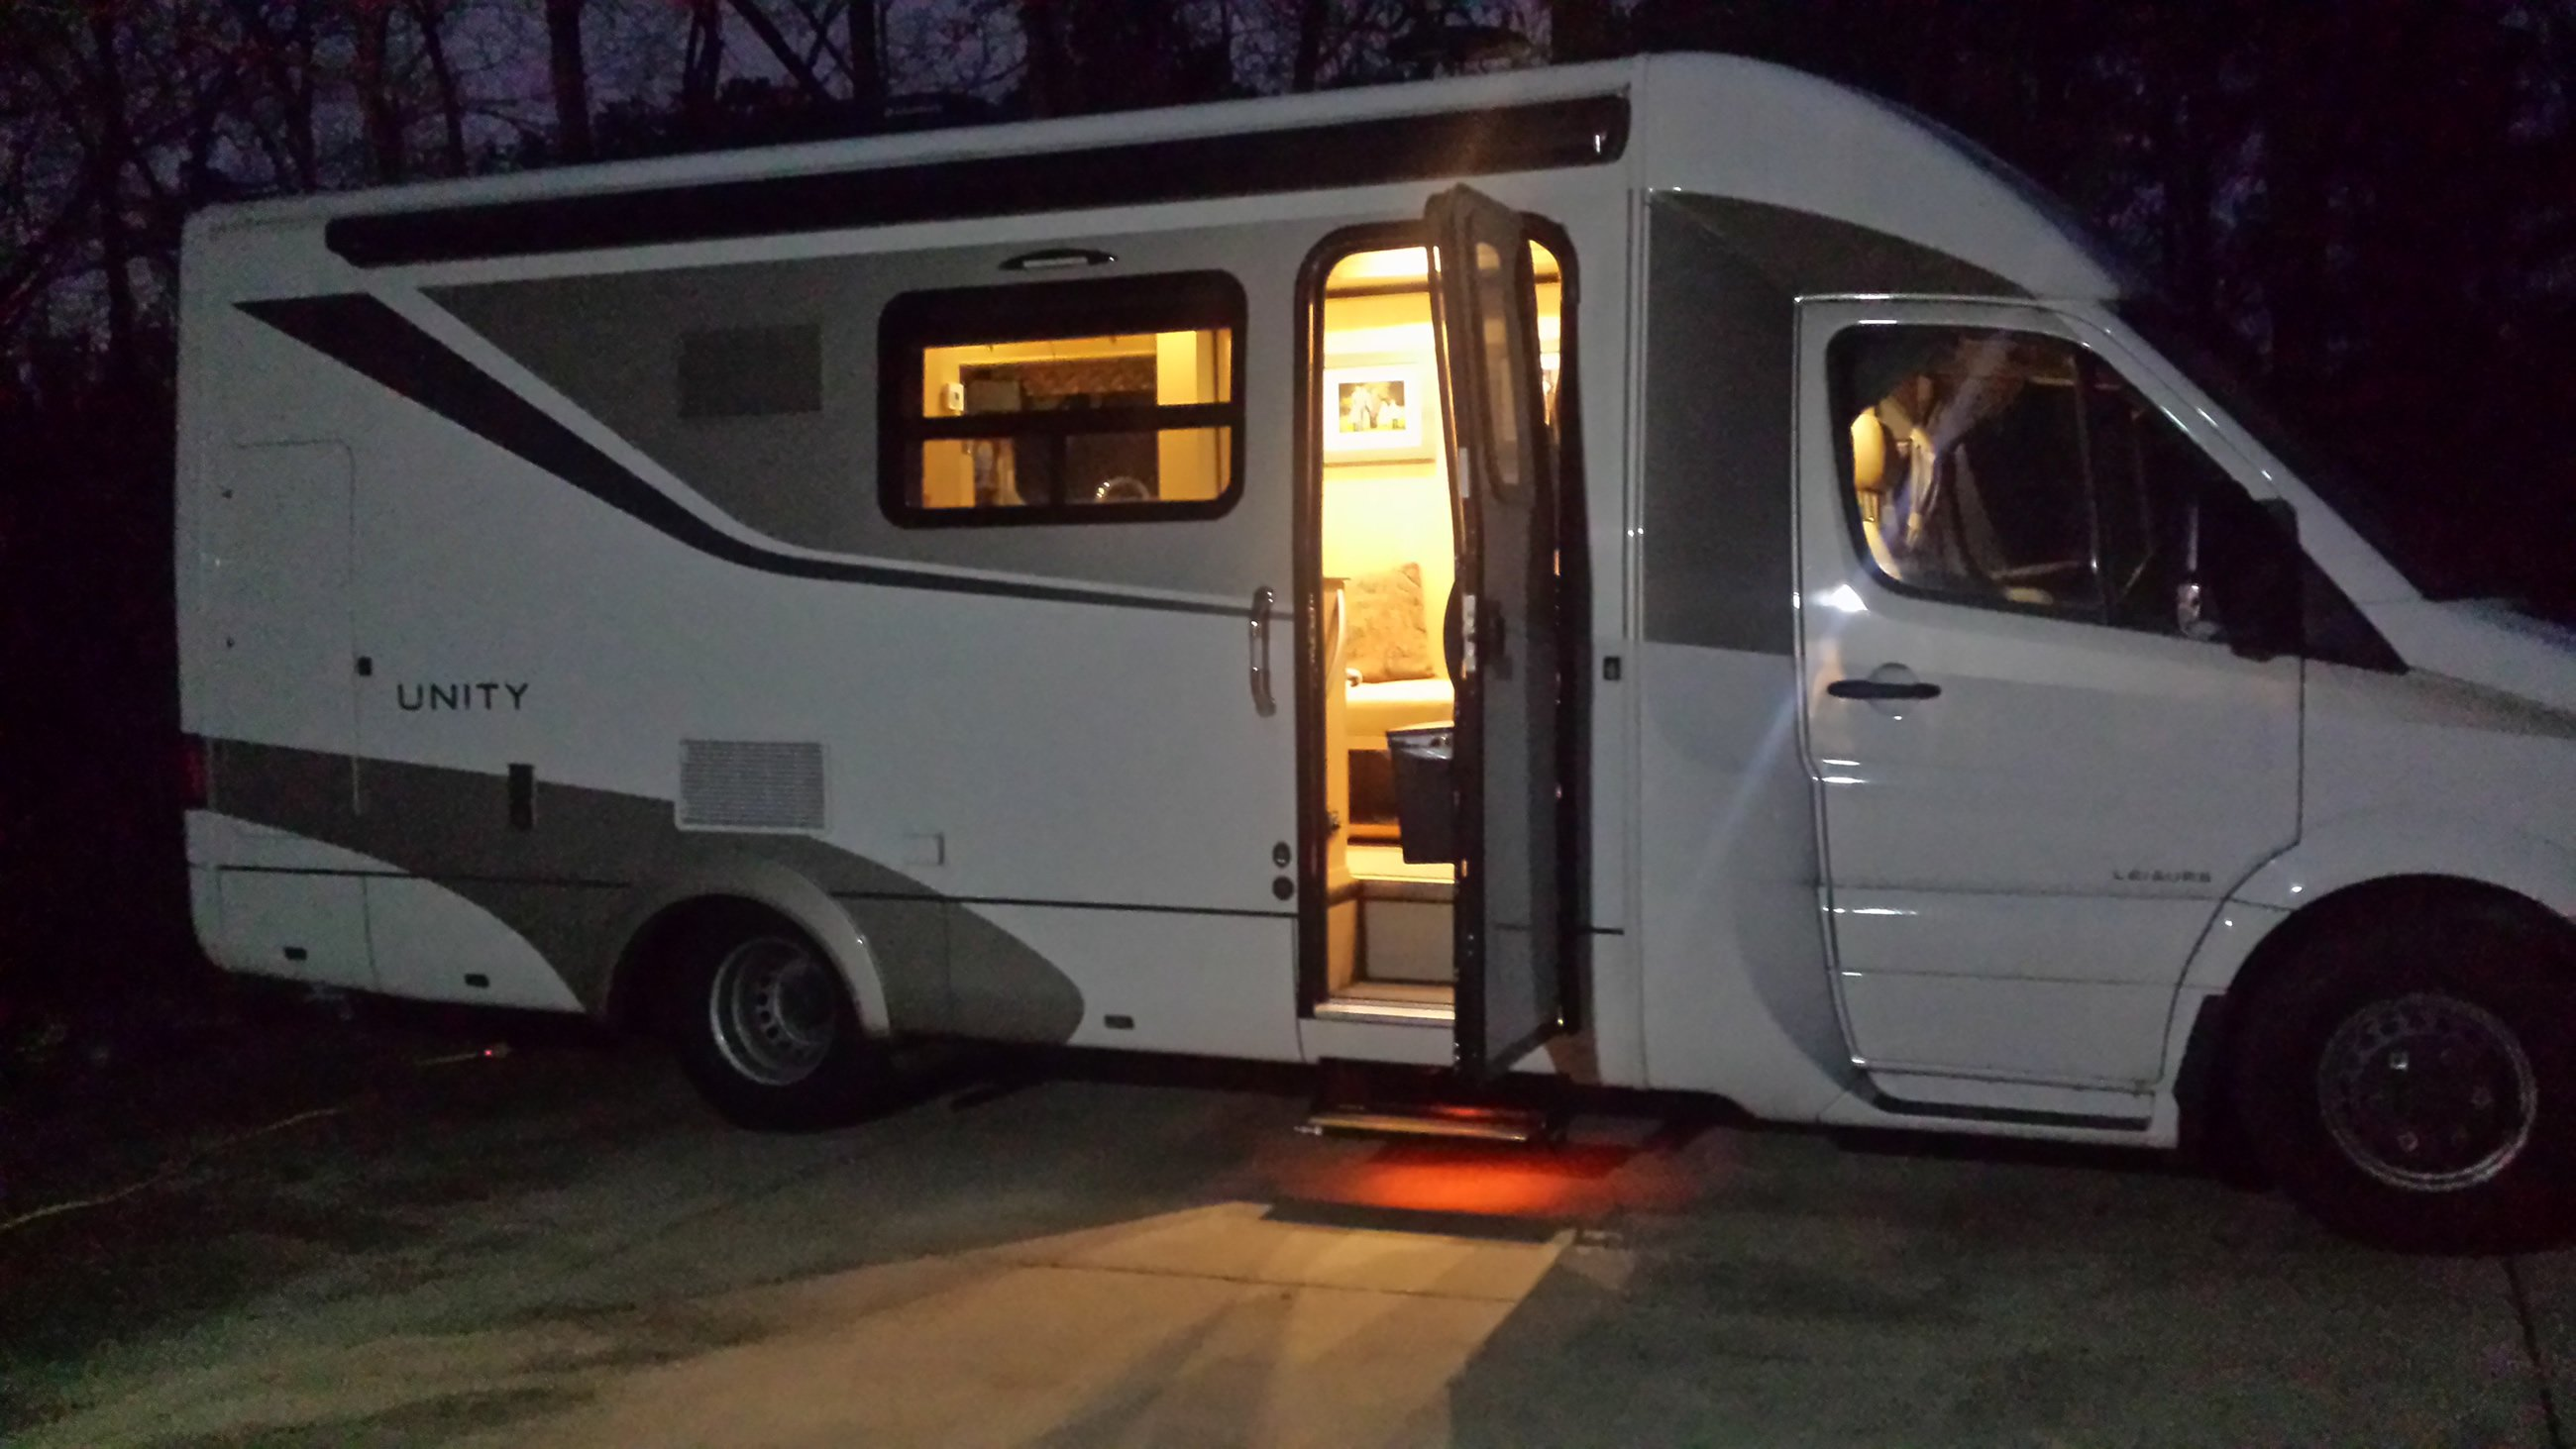 RV lit up at night